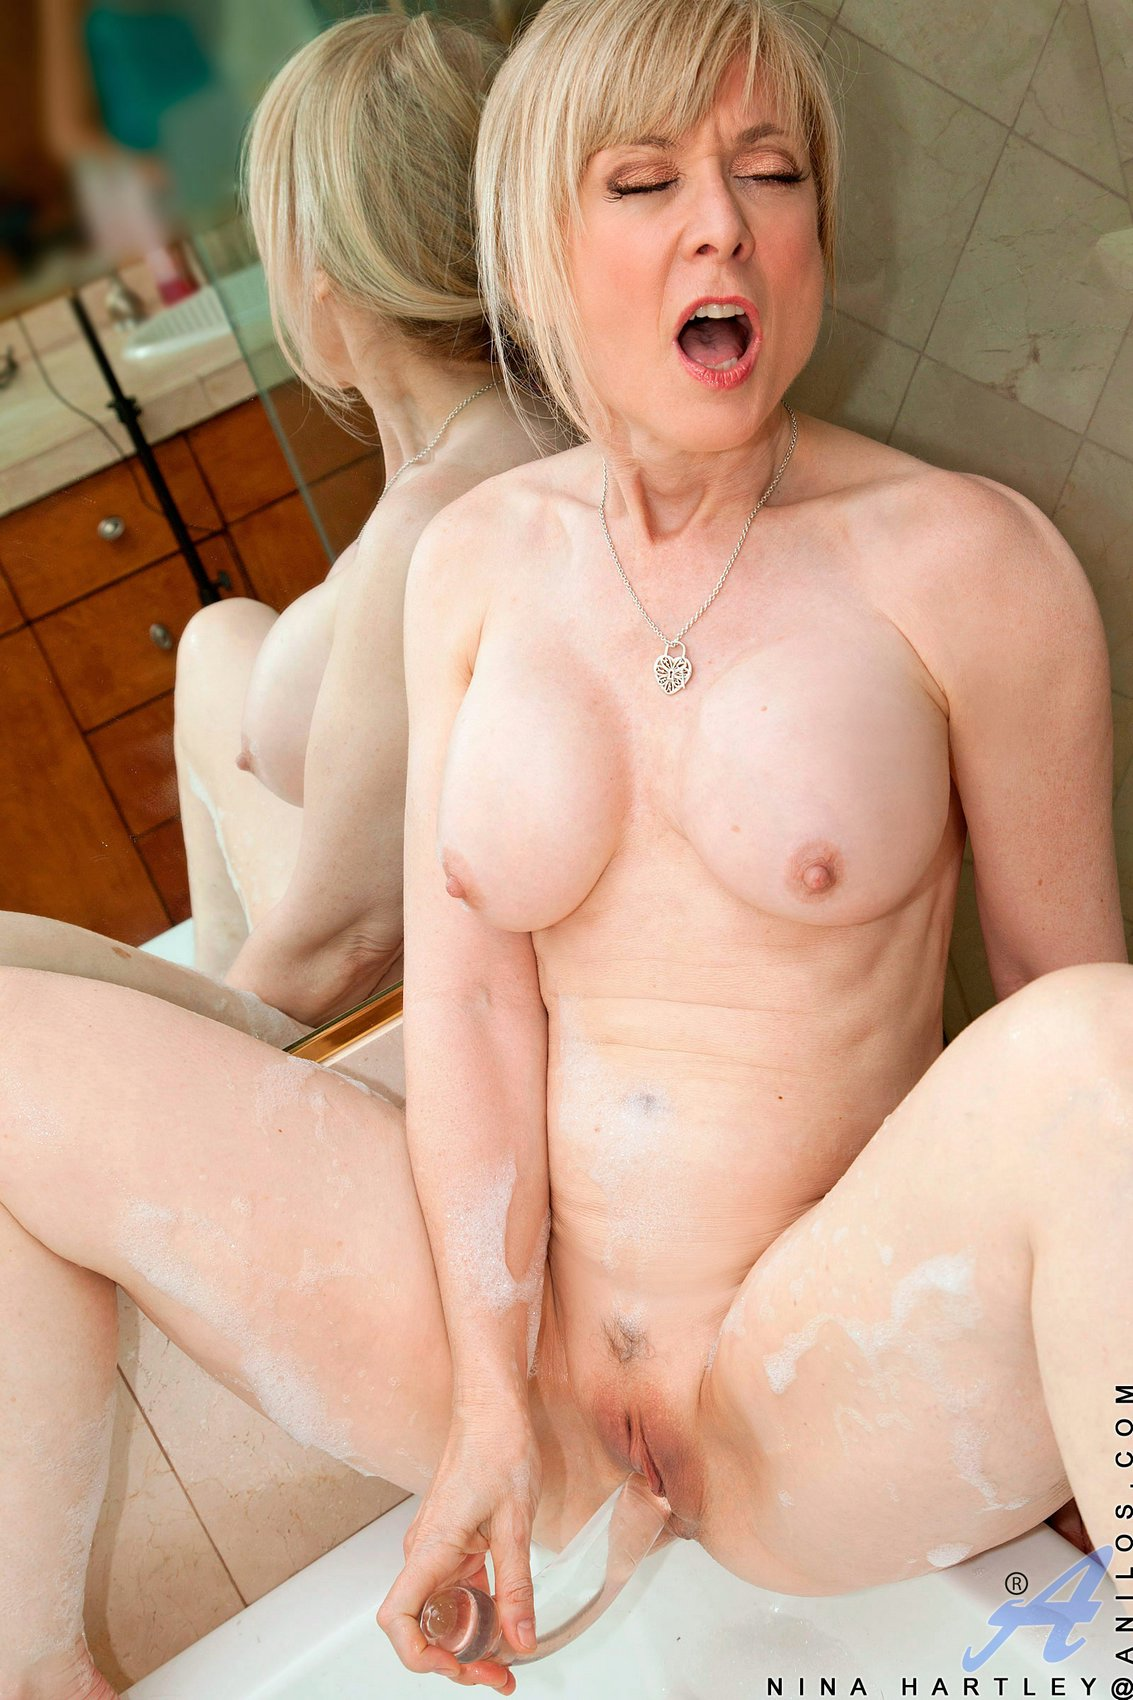 Theme interesting, Naked nina hartley consider, that